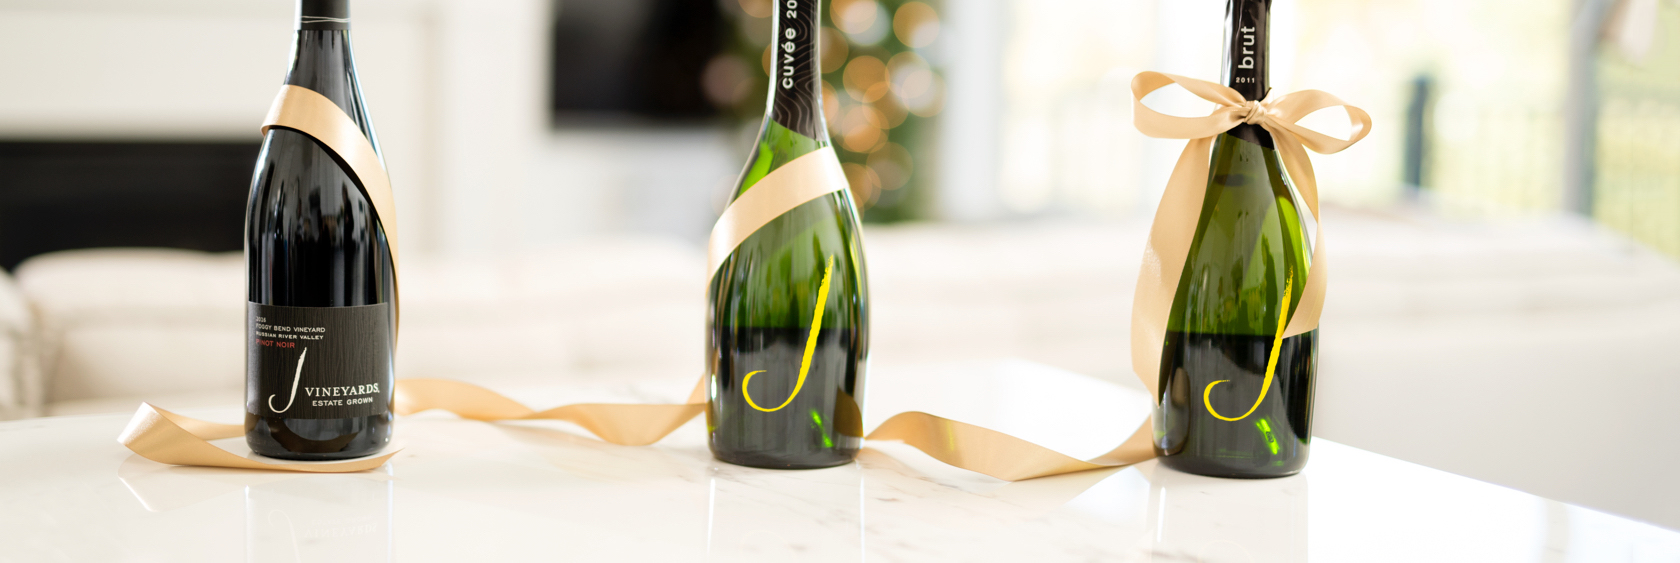 Three bottles of J Wines with a ribbon around them all